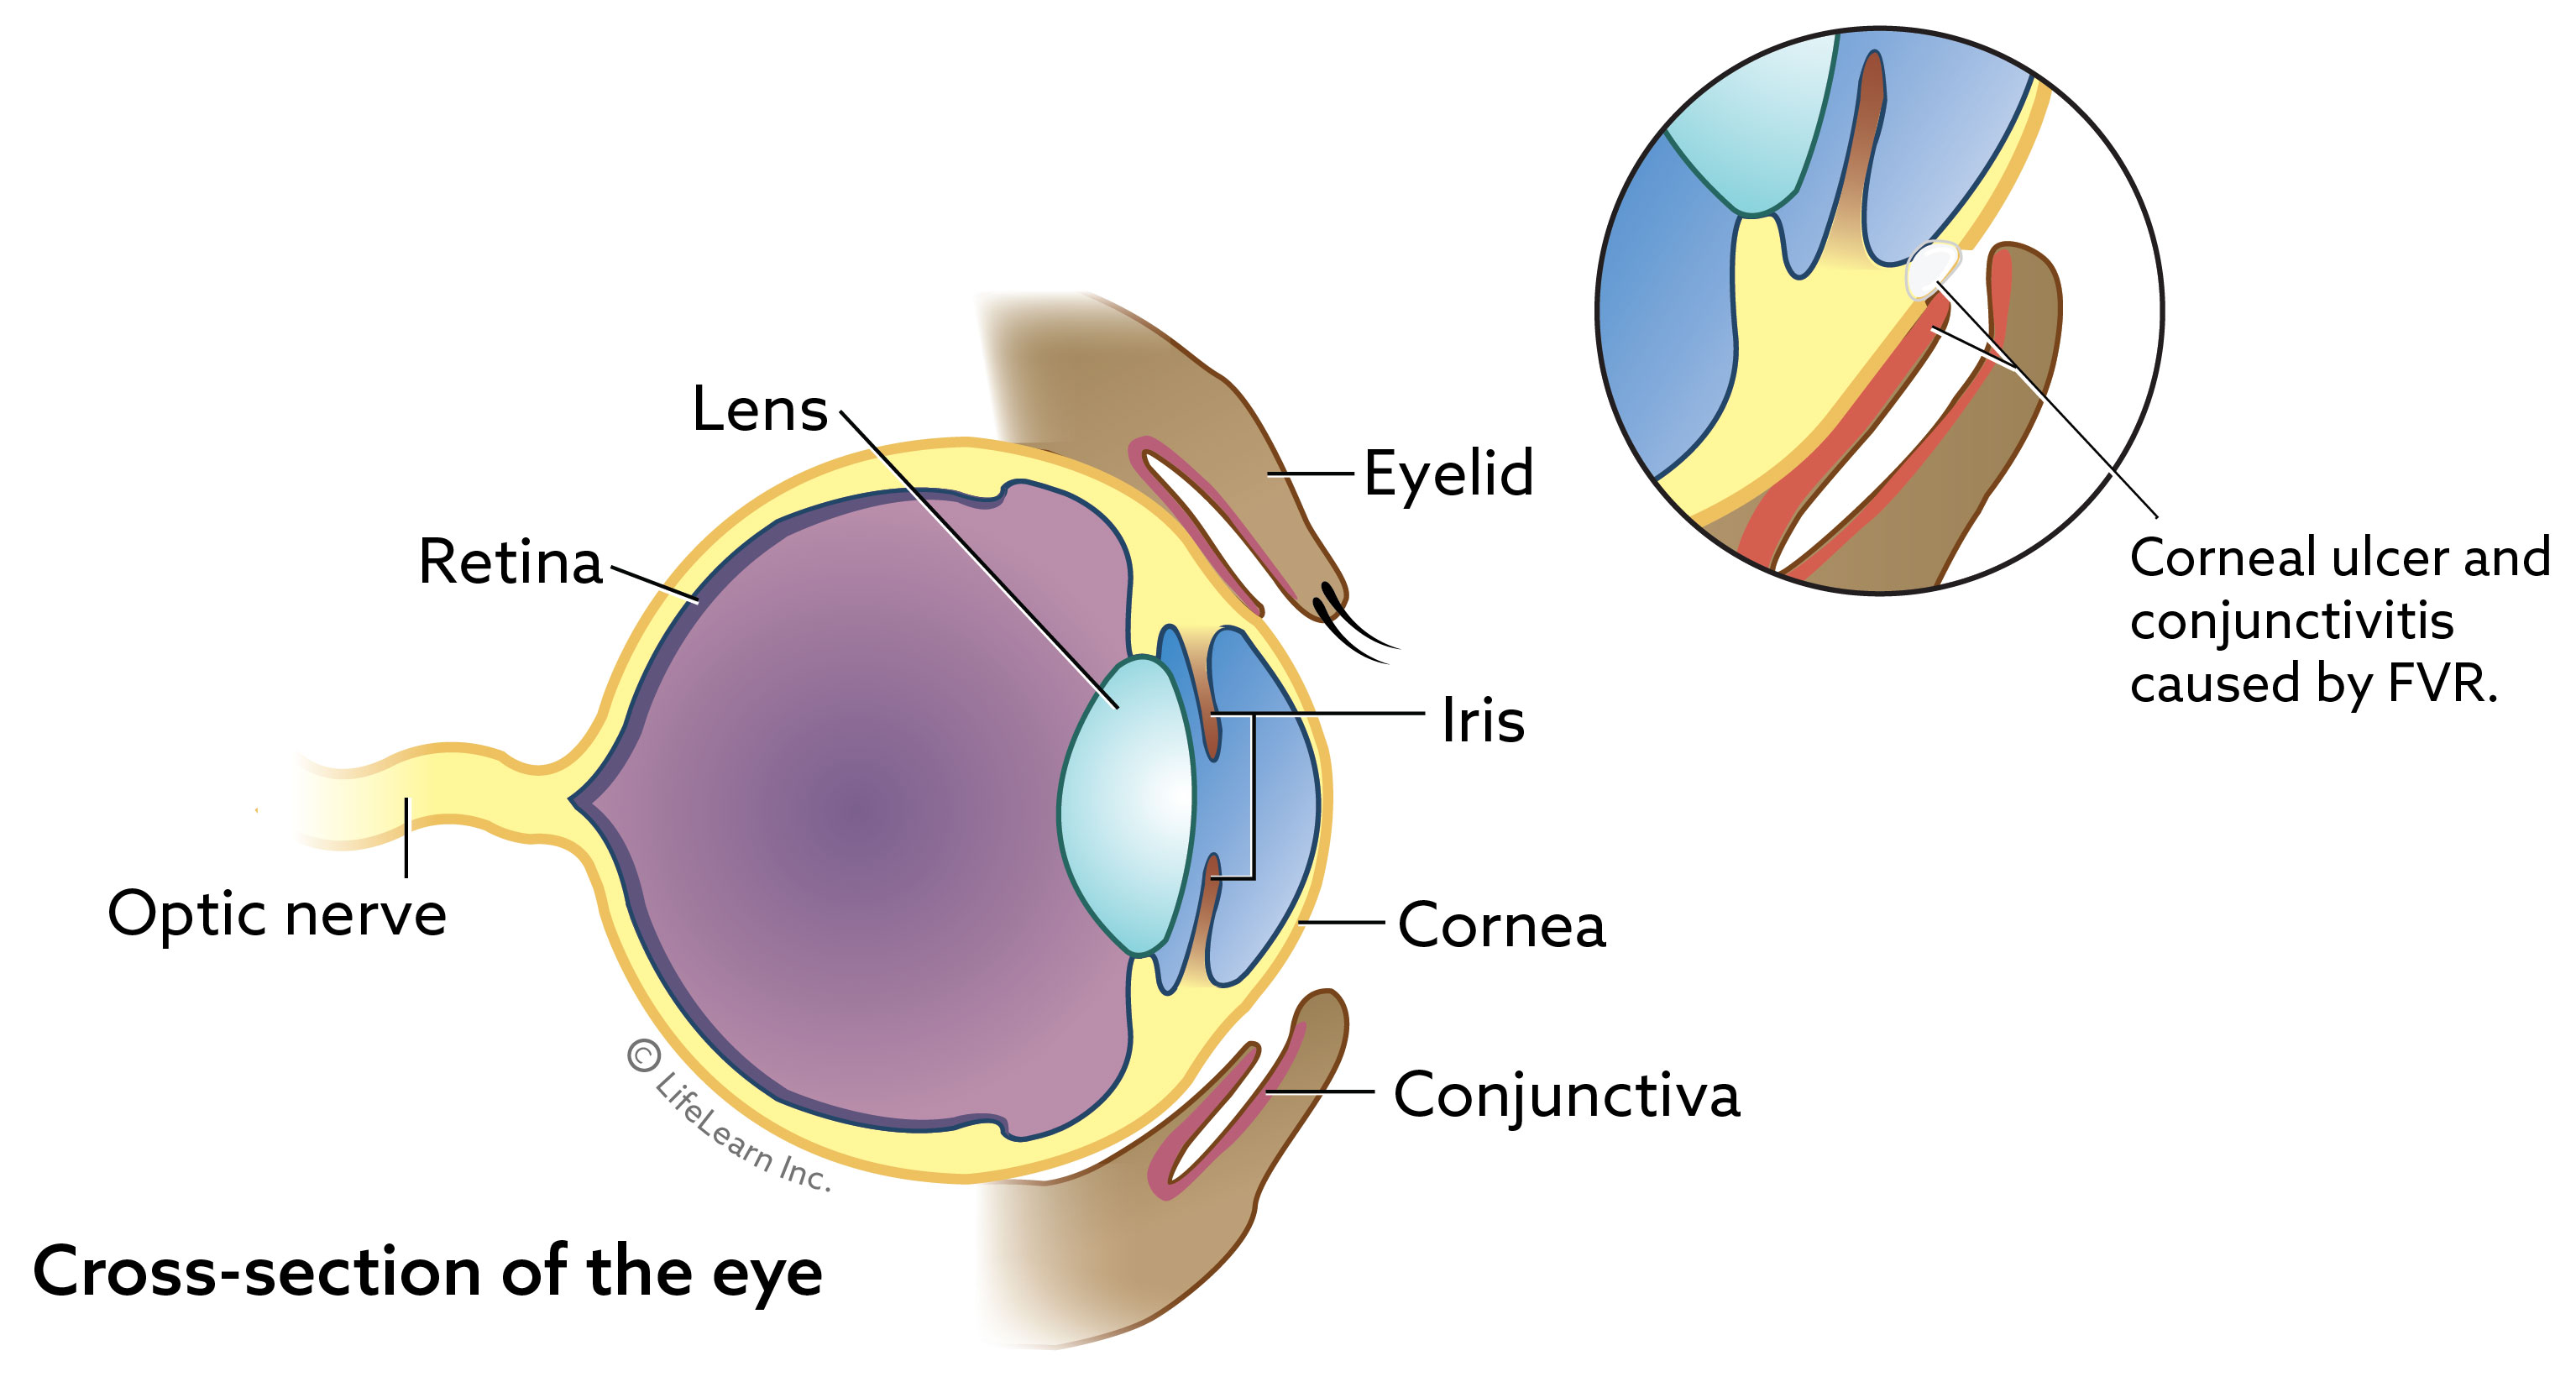 eye_basic_cross_section_ulcer_2018-01